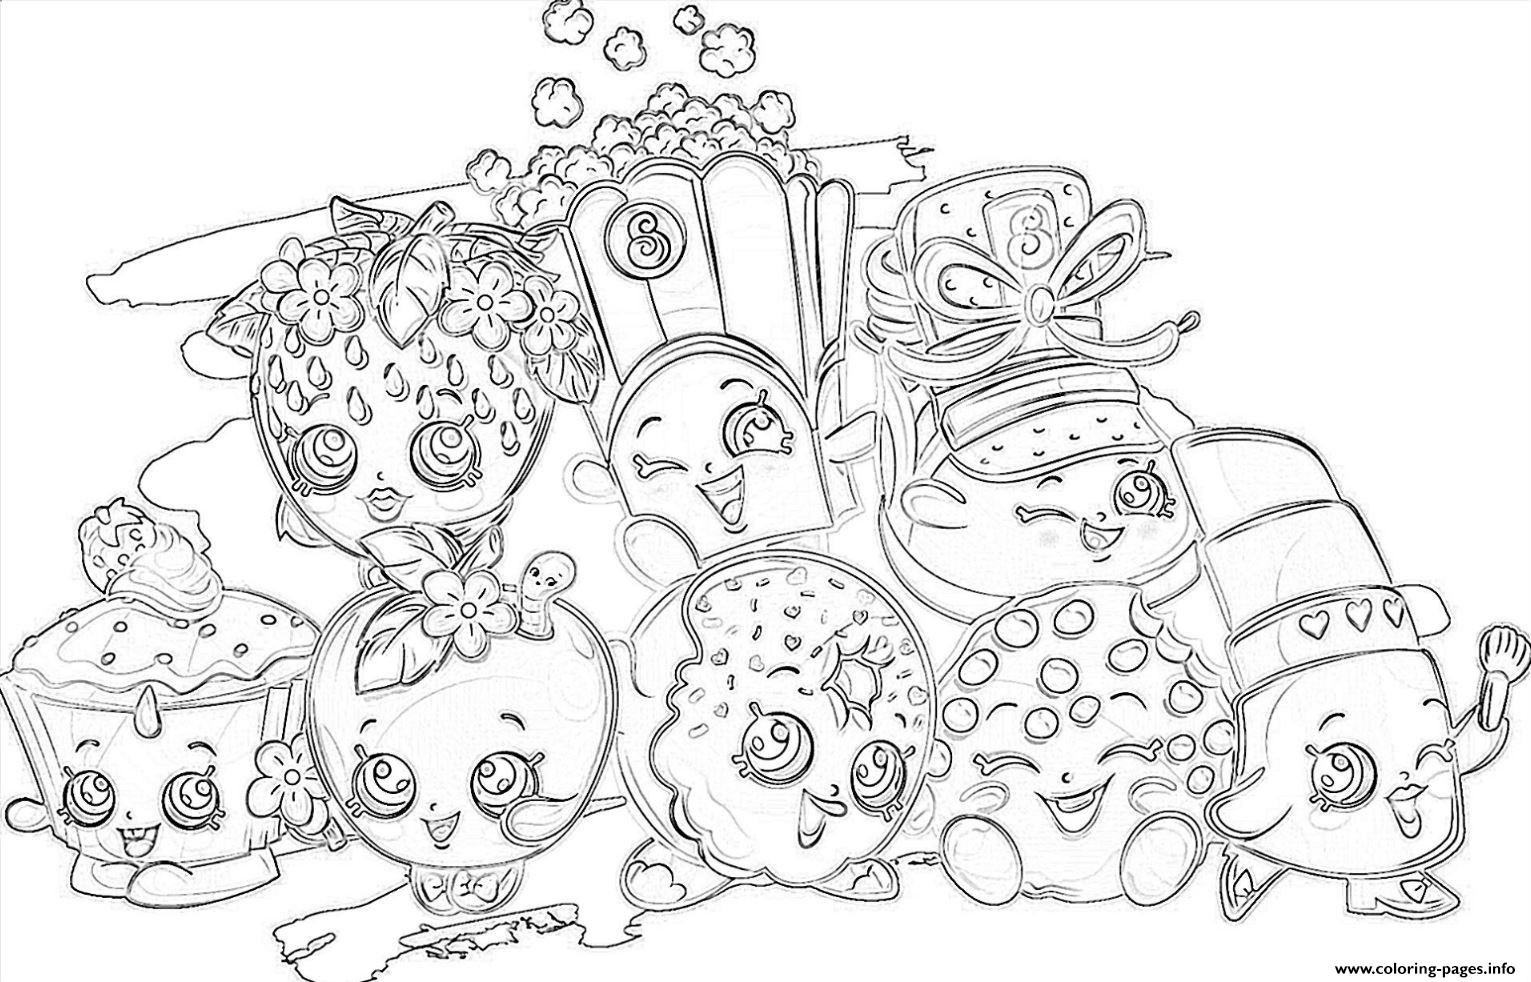 shopkin pictures that you can print shopkins coloring pages cartoon coloring pages print pictures you that can shopkin